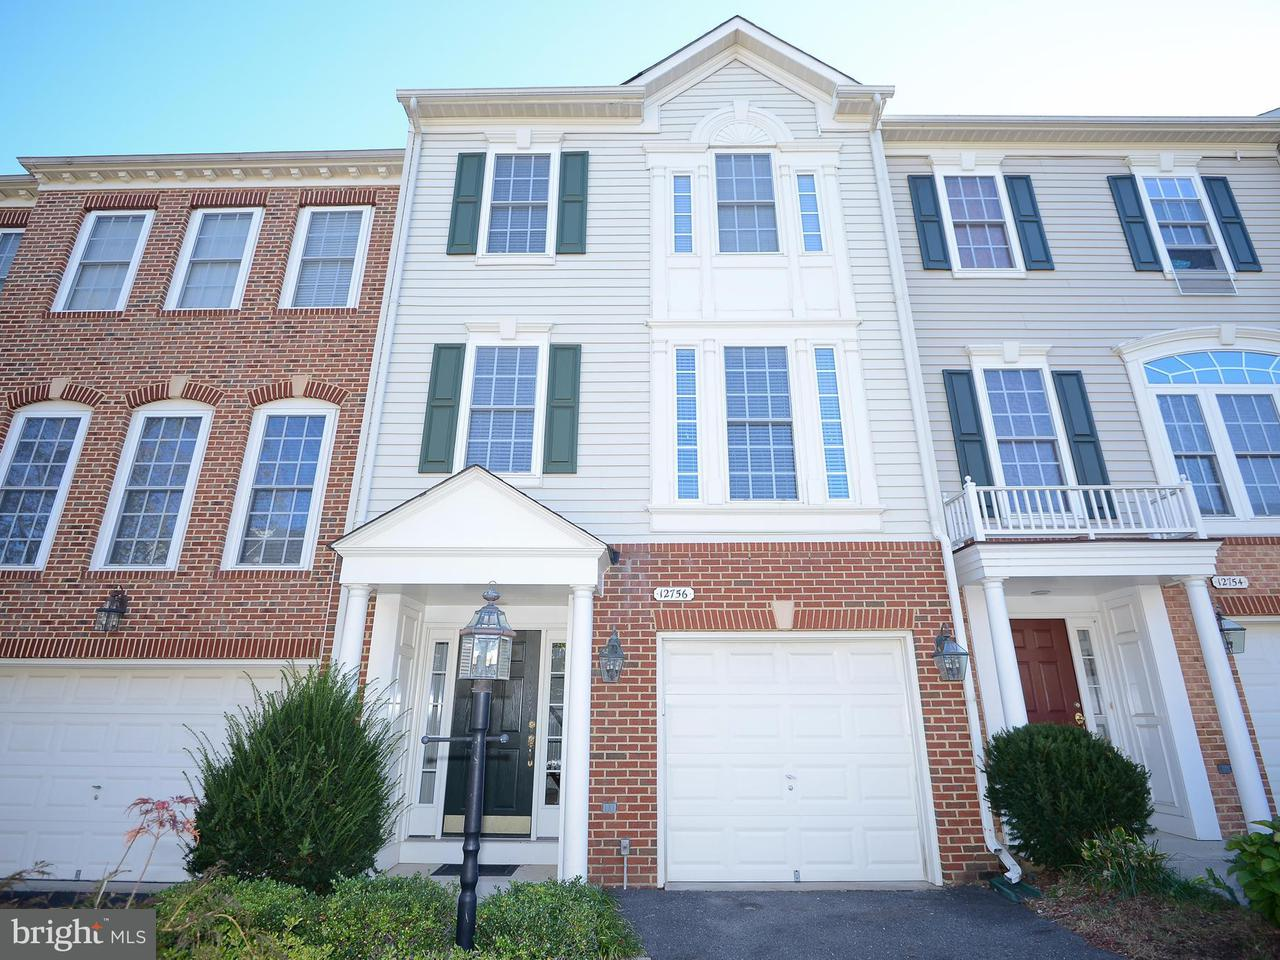 Townhouse for Sale at 12756 HERON RIDGE Drive 12756 HERON RIDGE Drive Fairfax, Virginia 22030 United States